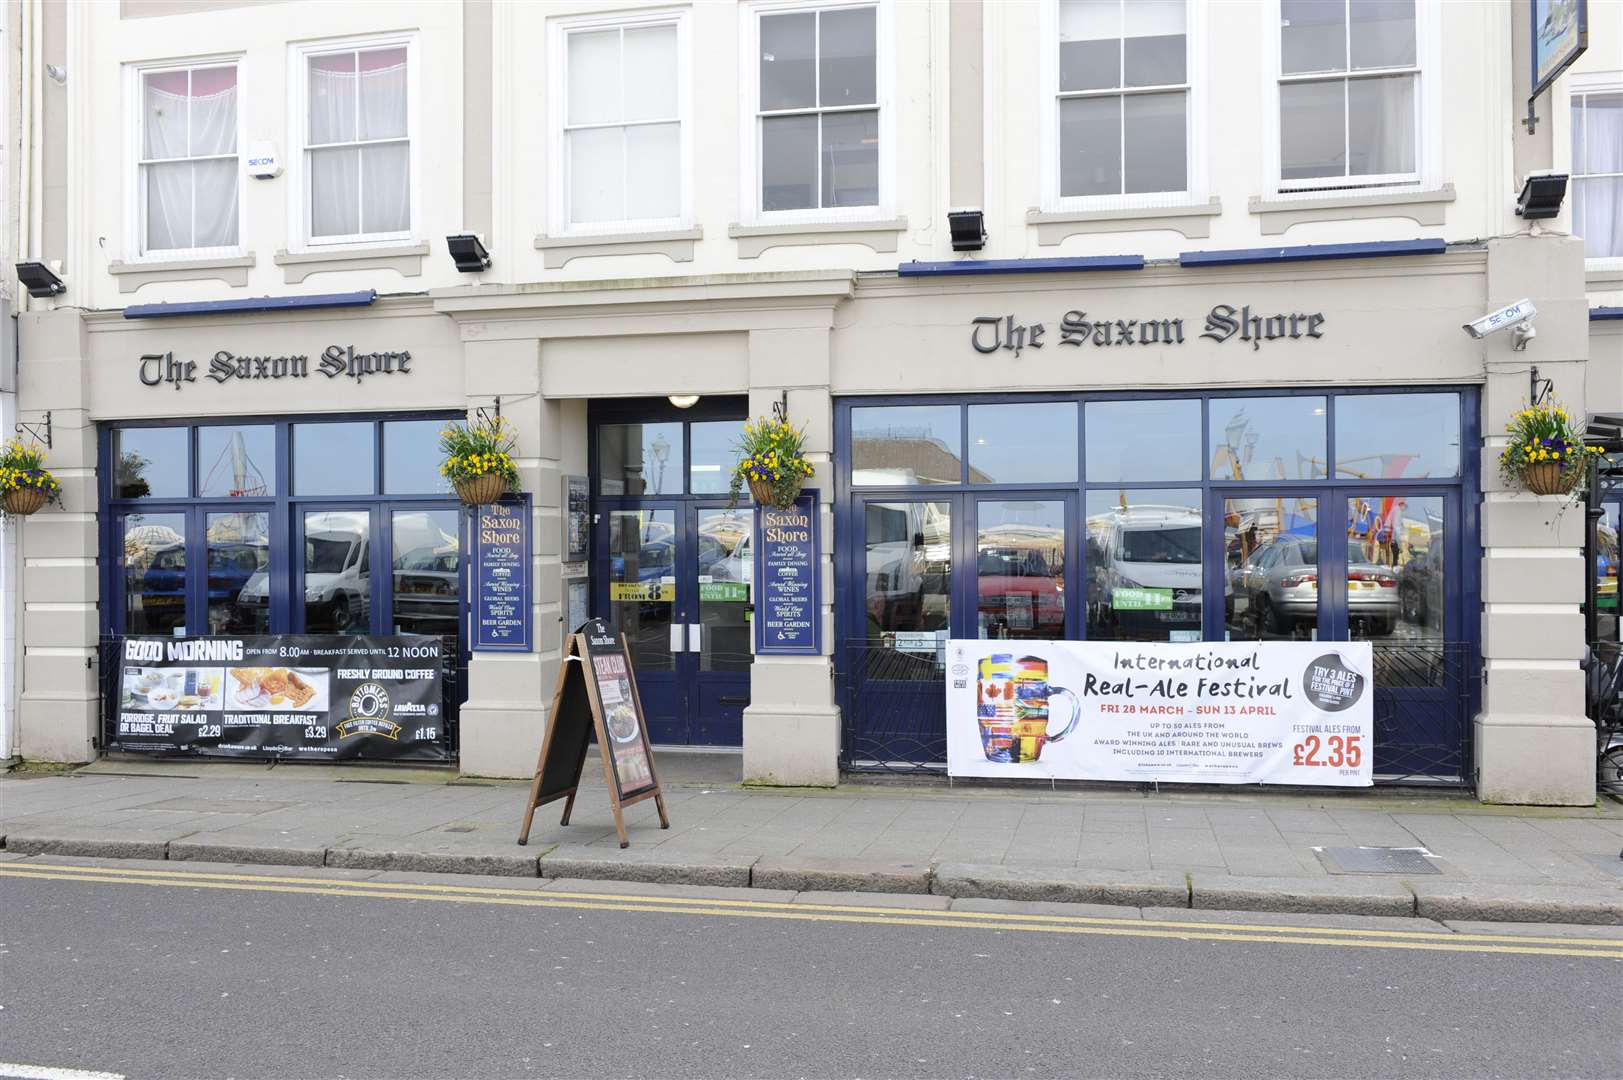 JD Wetherspoon opened The Saxon Shore in Herne Bay in 1999